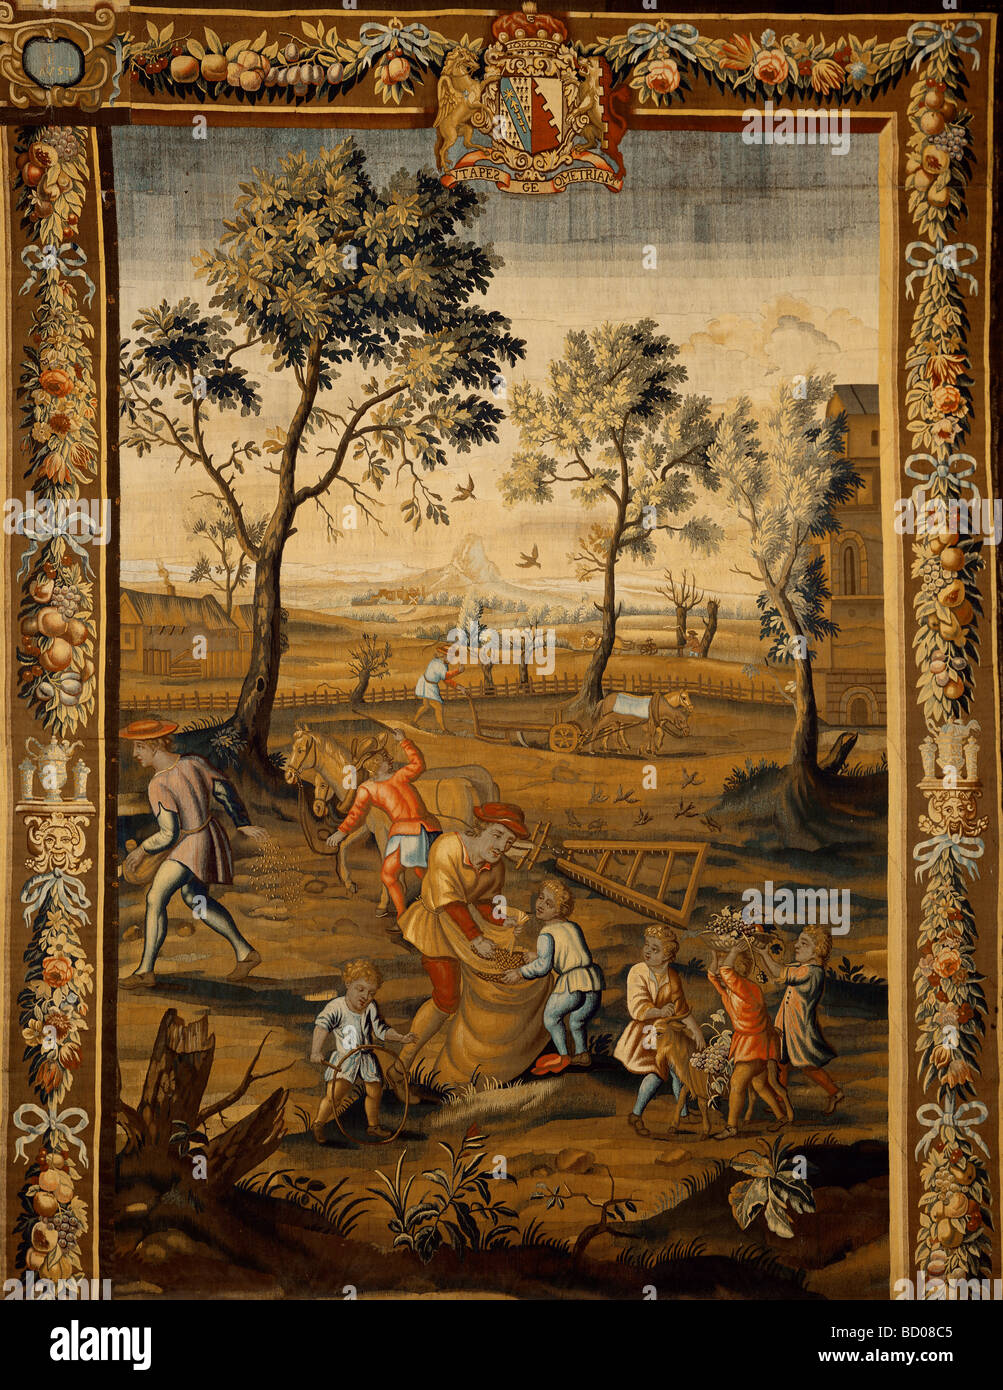 Sowing, one of a set of tapestries illustrating The Seasons, by ex-Mortlake weavers. England, 17th-18th century - Stock Image